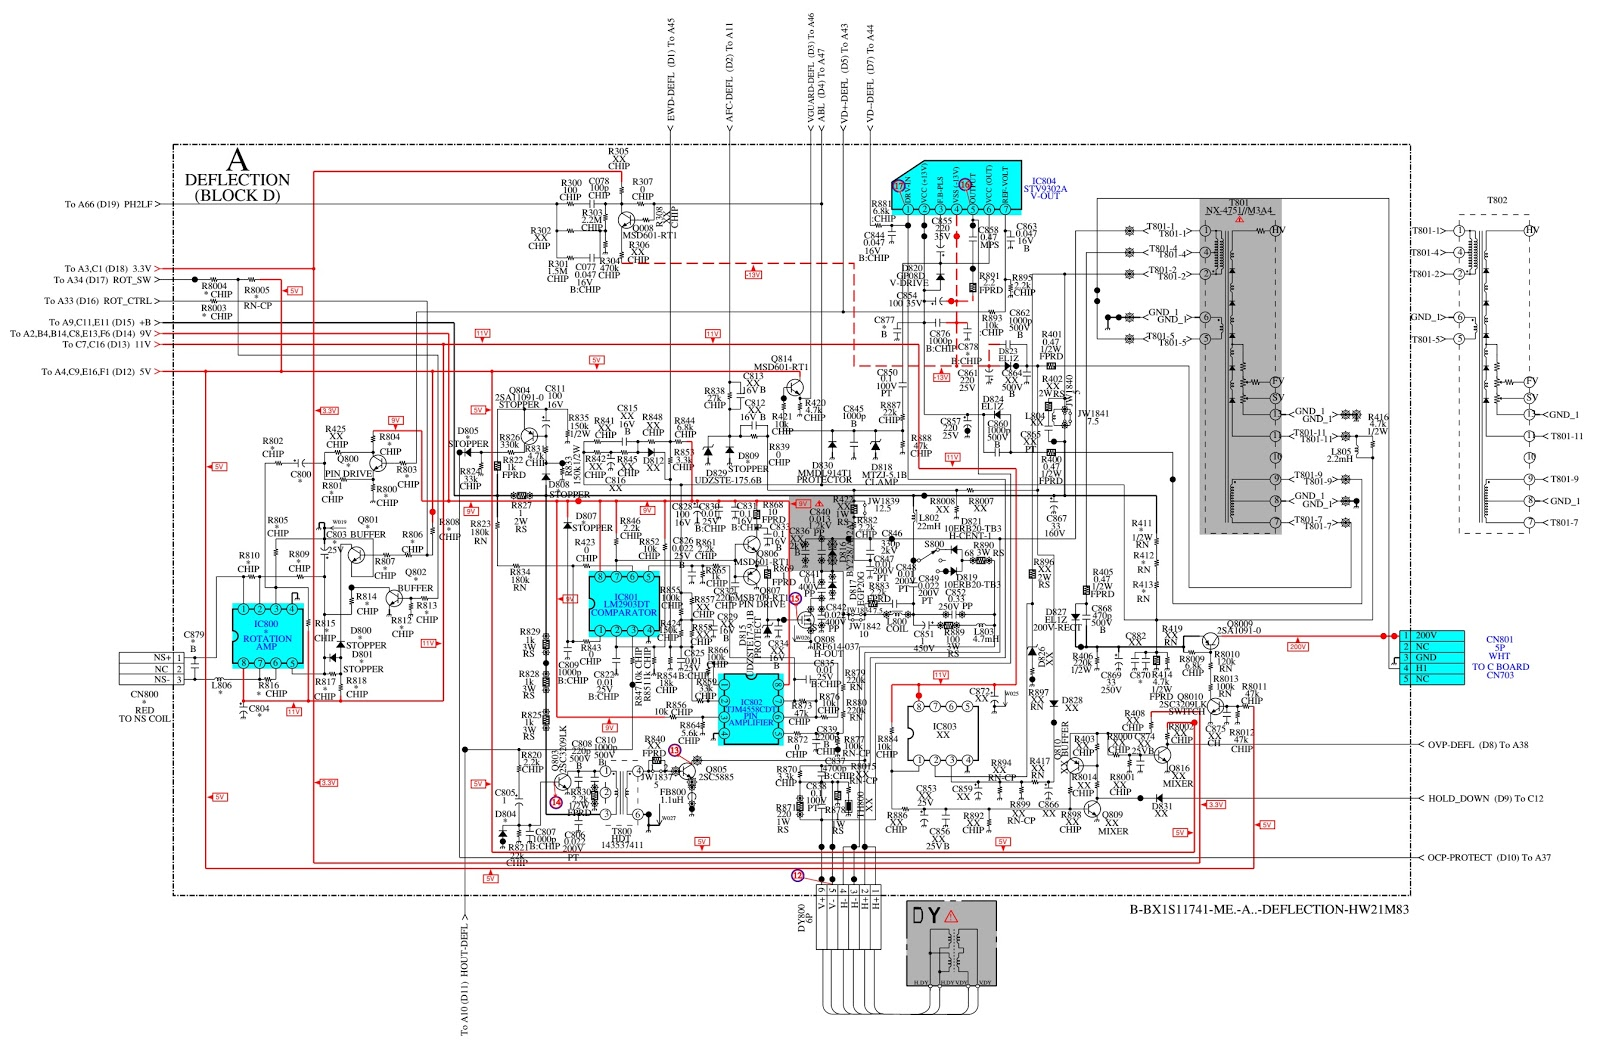 small resolution of g21 wiring diagram manual e book kubota g21 wiring diagram g21 wiring diagram